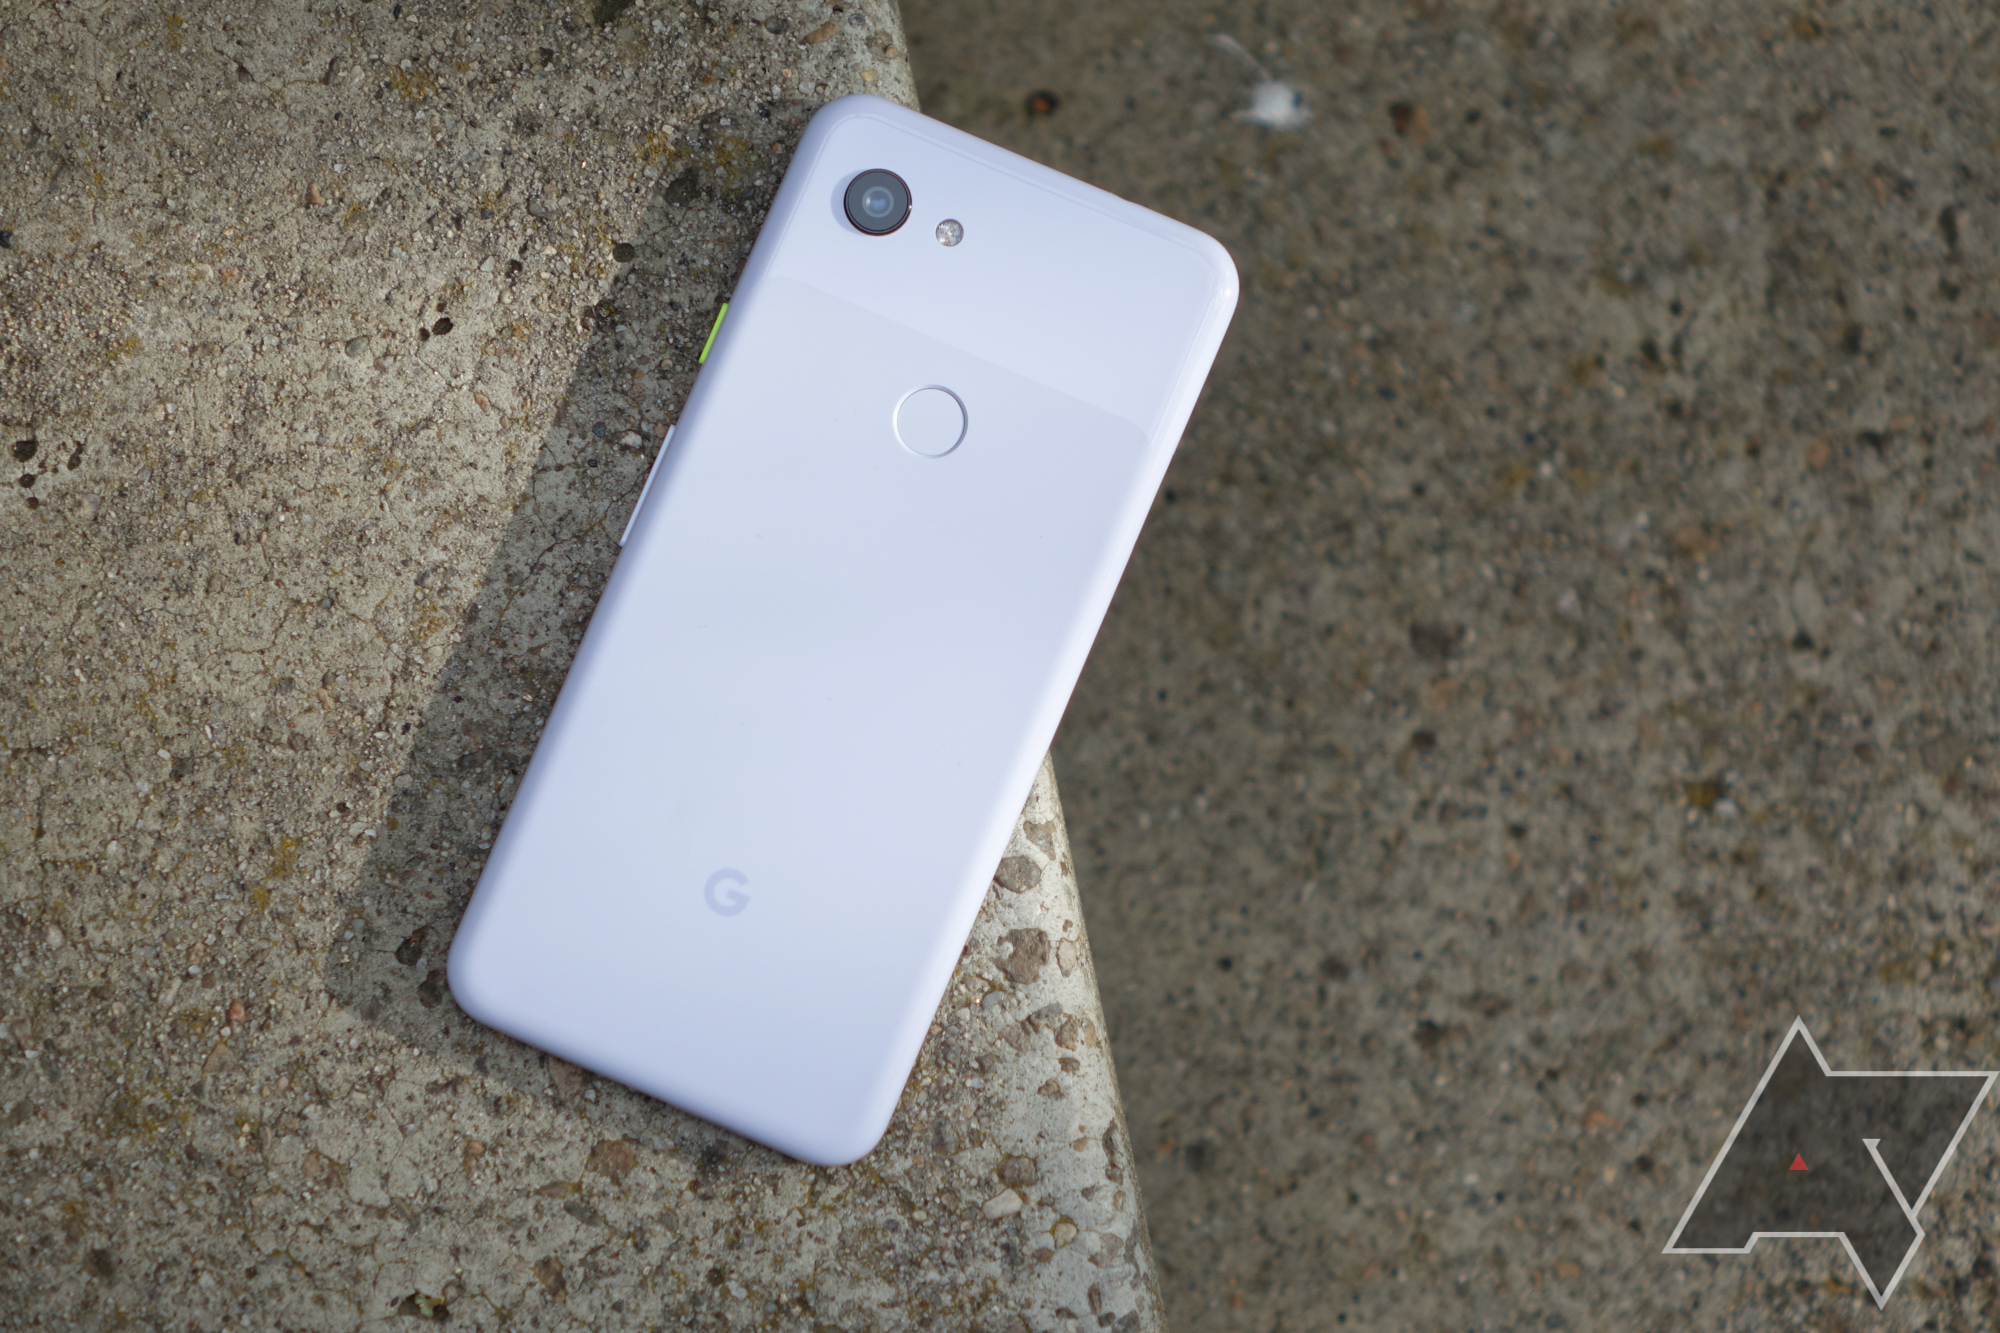 Pixel 3a and 3a XL review: They make almost any phone under